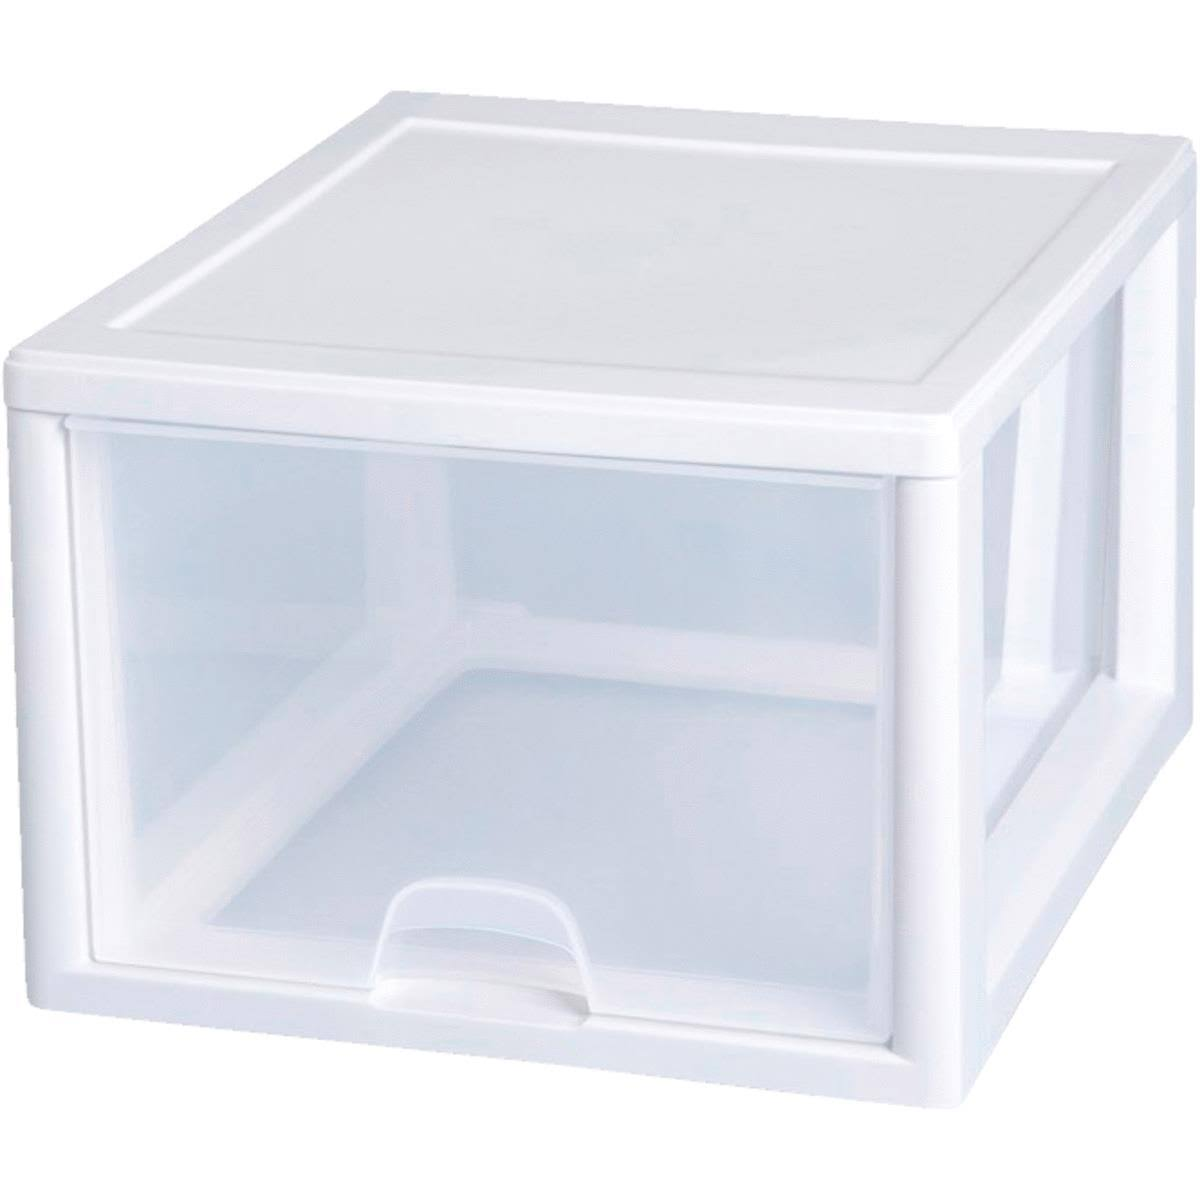 Sterilite Stacking Drawer